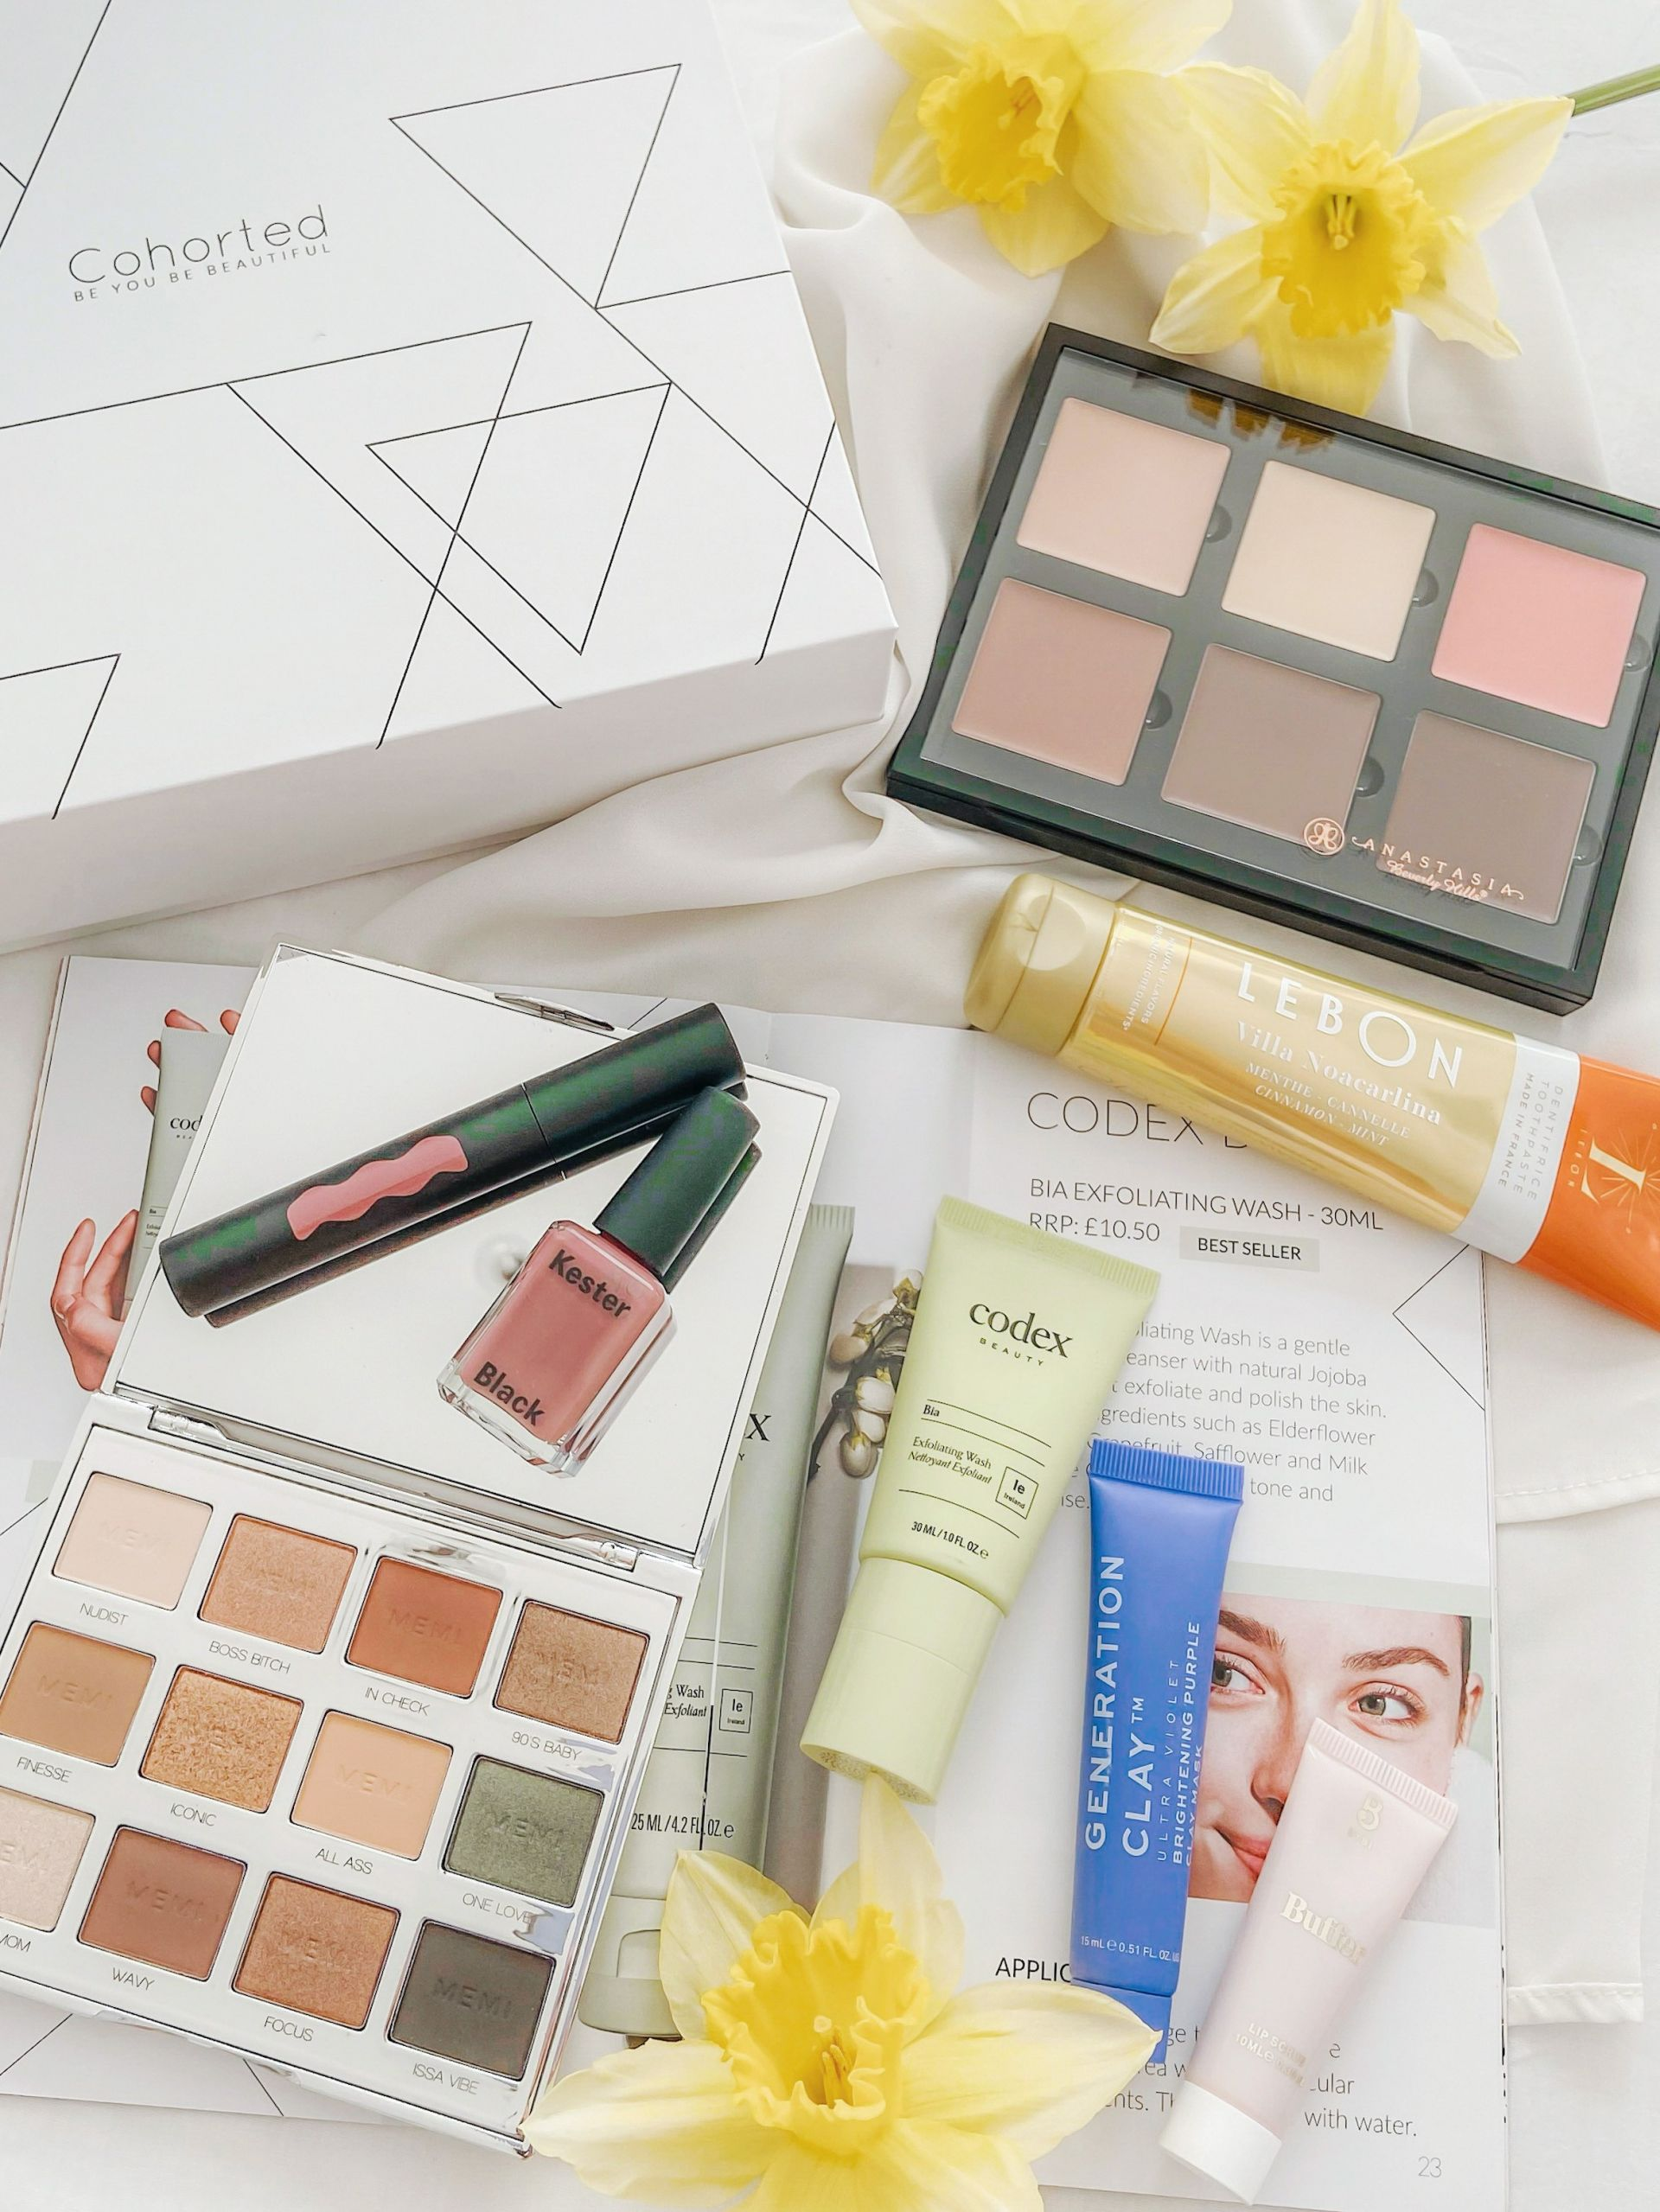 Beauty Subscription Box Cohorted